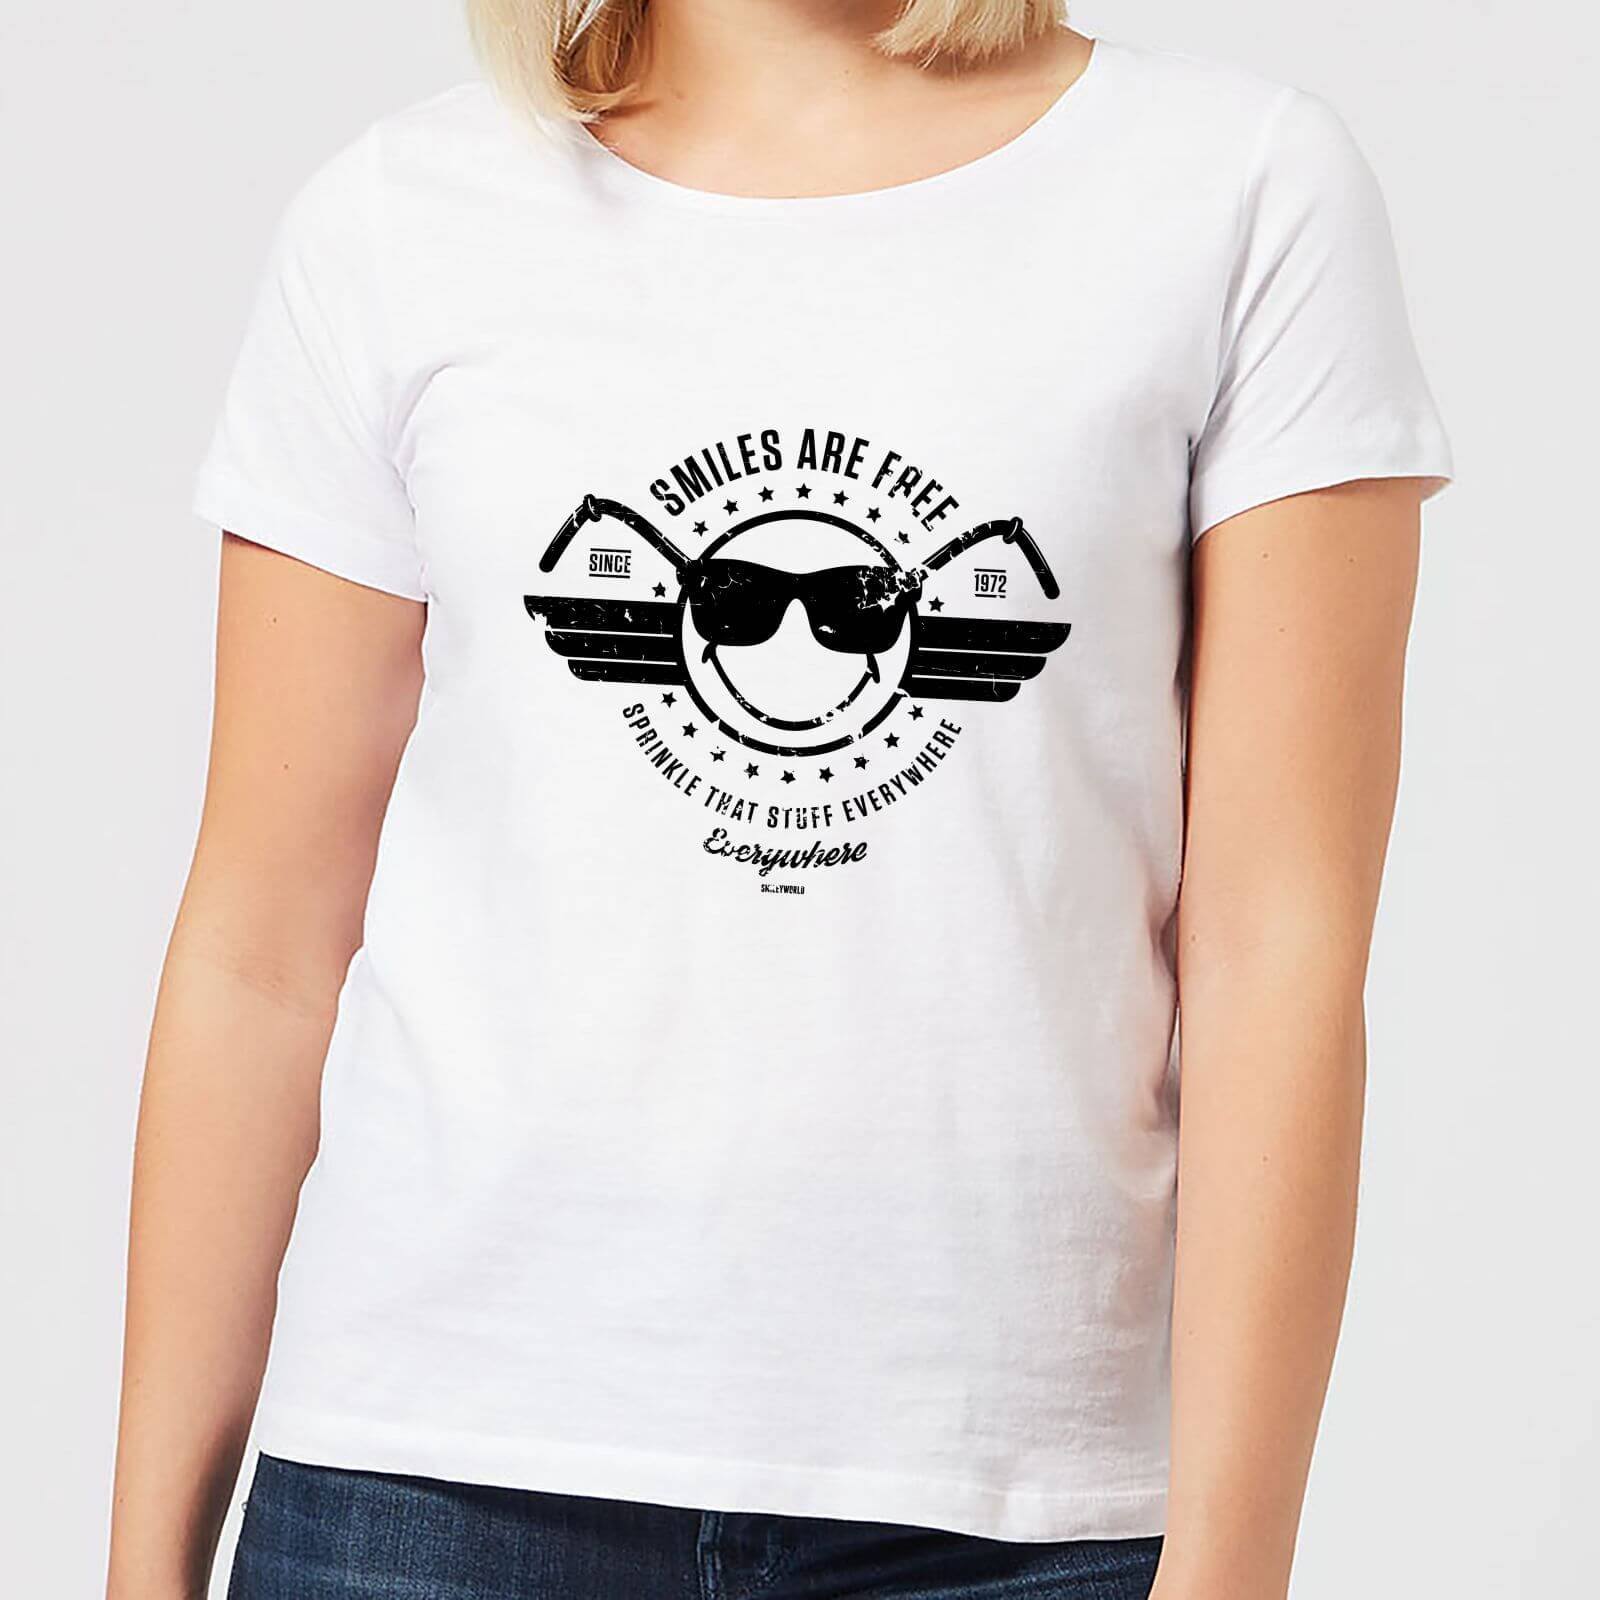 Smiley Smiles Are Free Women's T-Shirt - White - L - Weiß